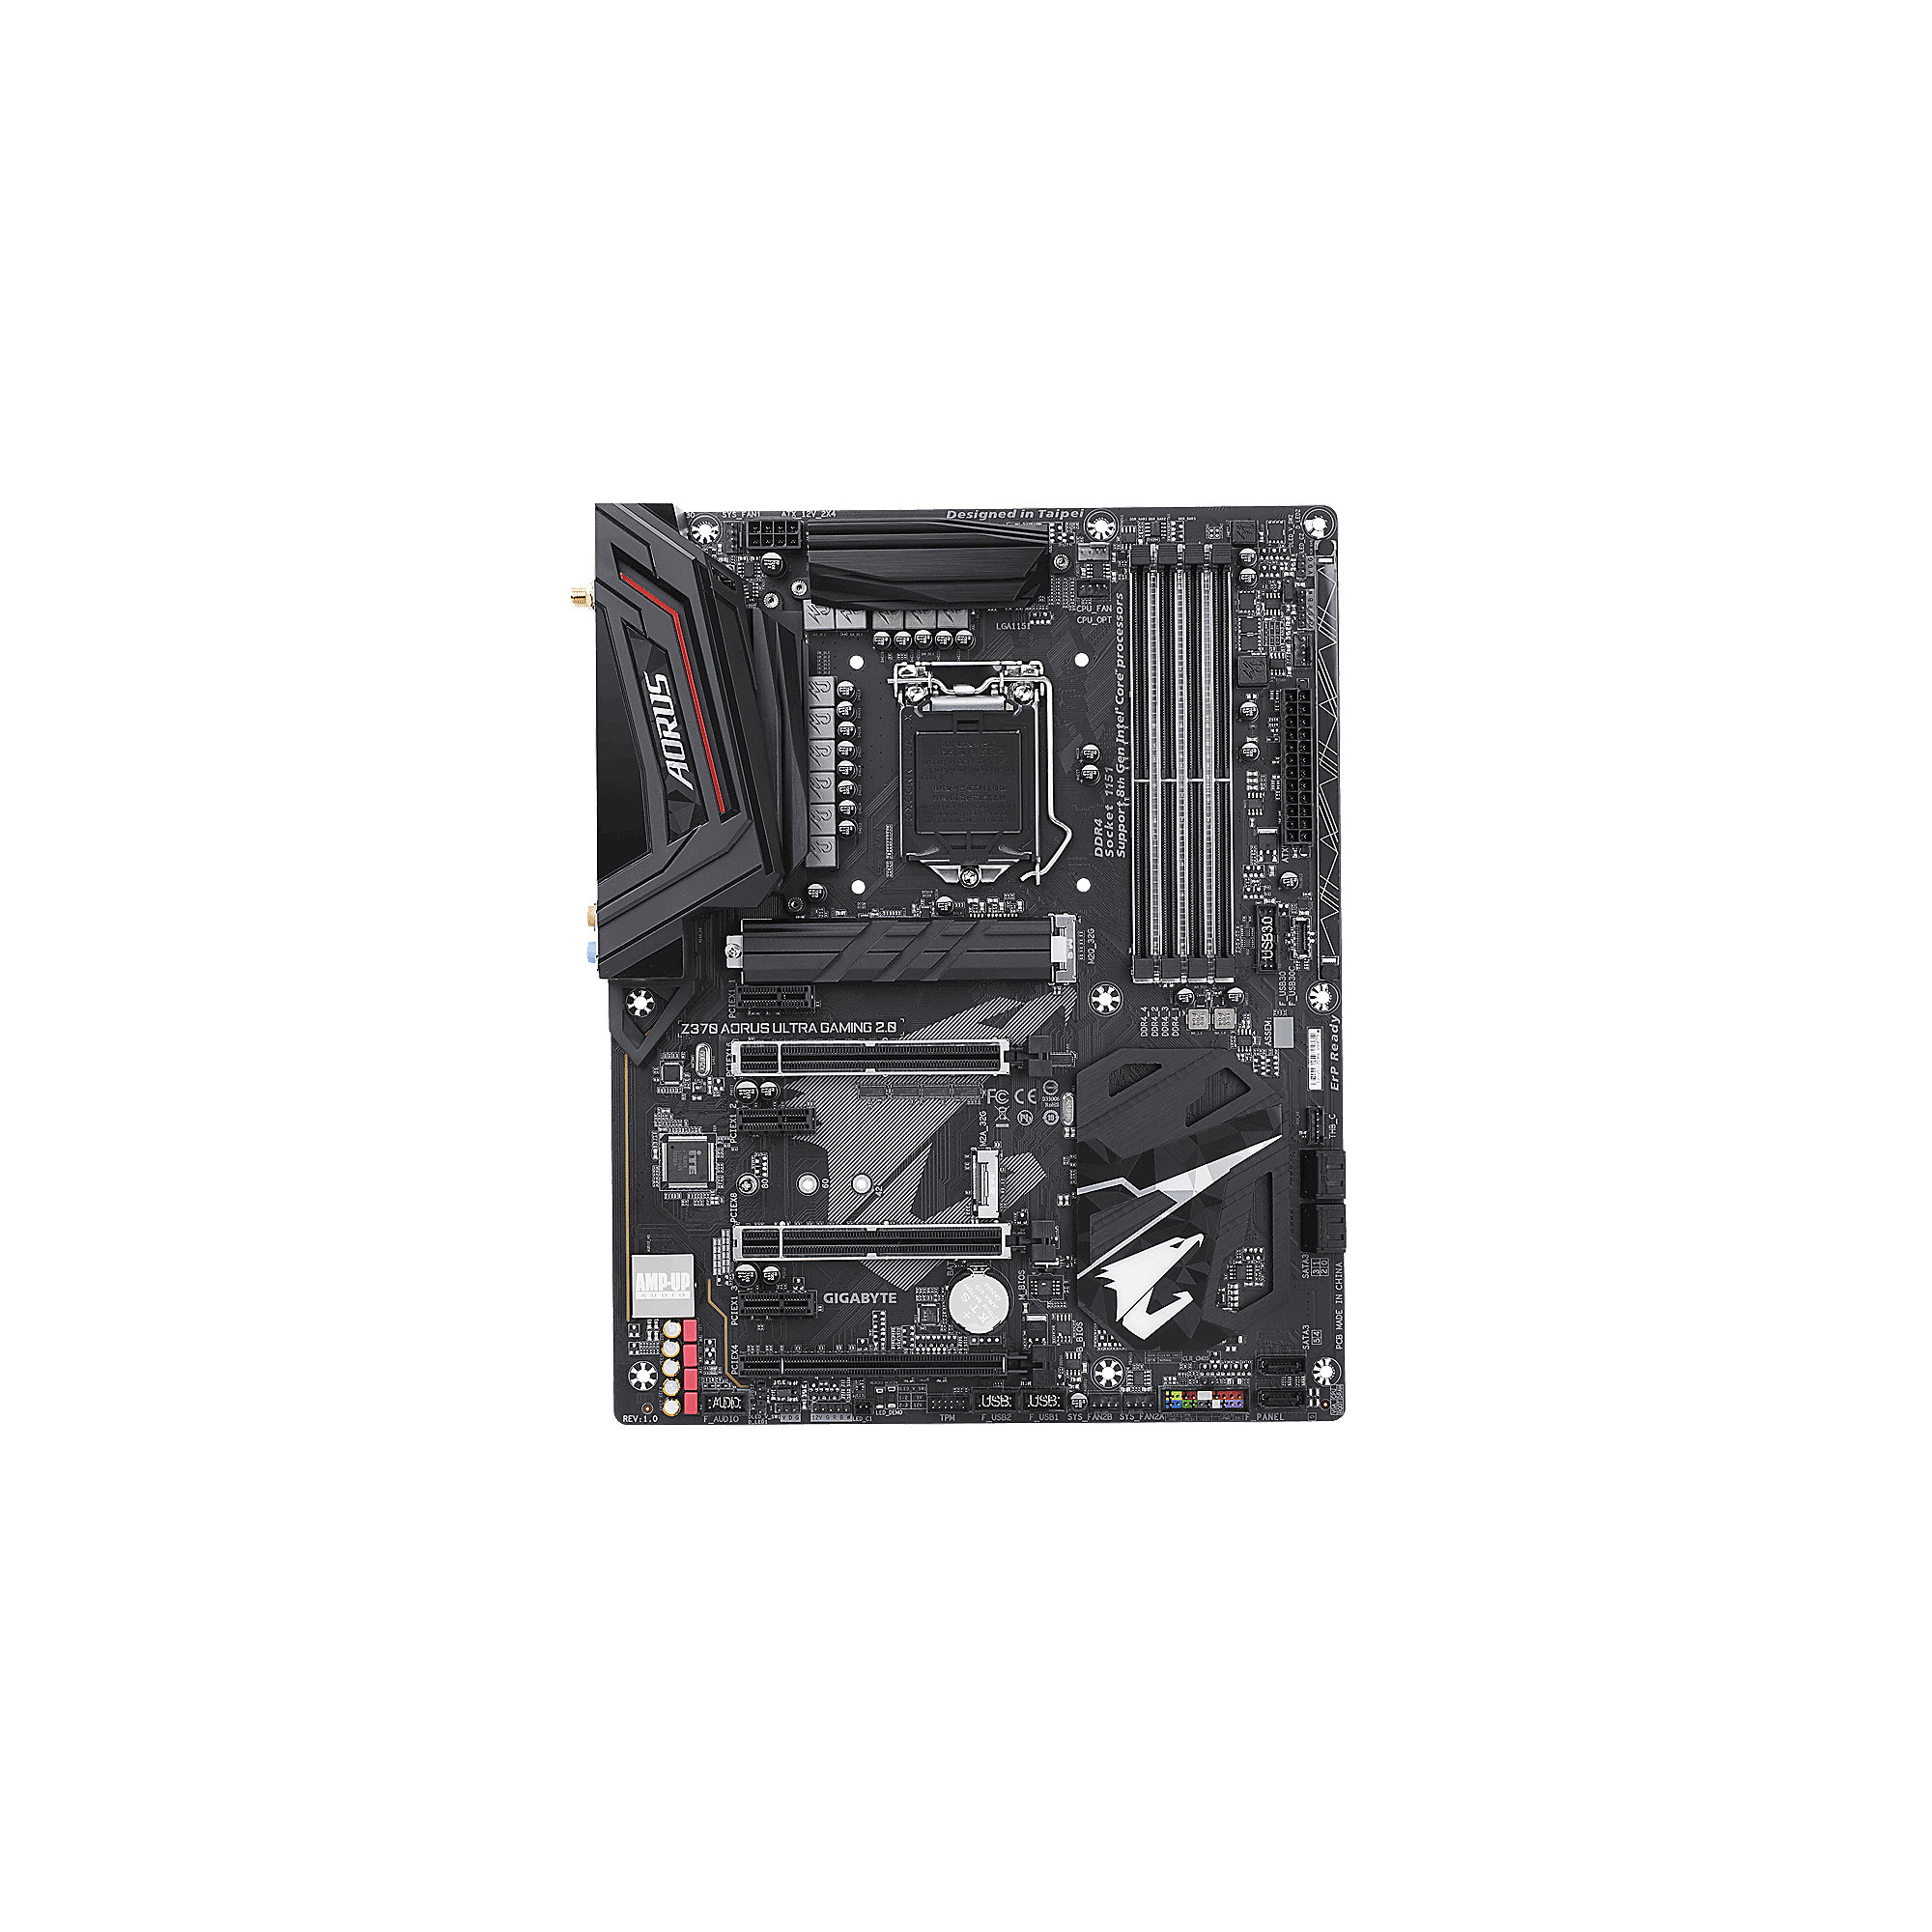 Gigabyte AORUS Z370 Ultra Gaming 2.0 ATX Mainboard 1151 (Coffee Lake)